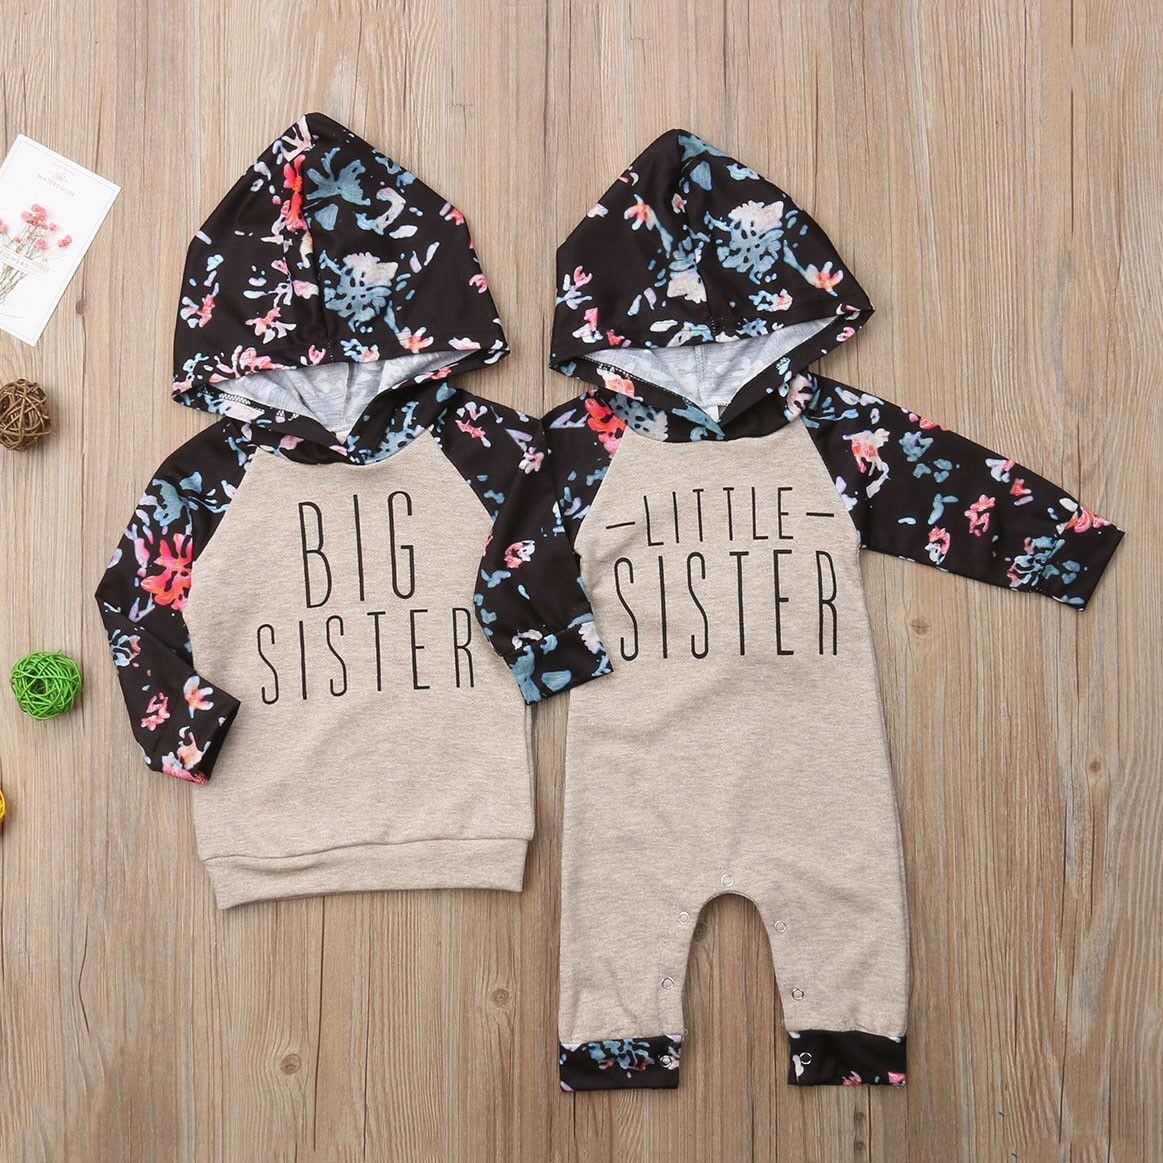 Calsunbaby Baby Girl Sister Matching Floral Clothes Hooded Tops Kids Romper Outfit Set Walmart Com Big Sister Outfits Sister Outfits Twin Baby Clothes